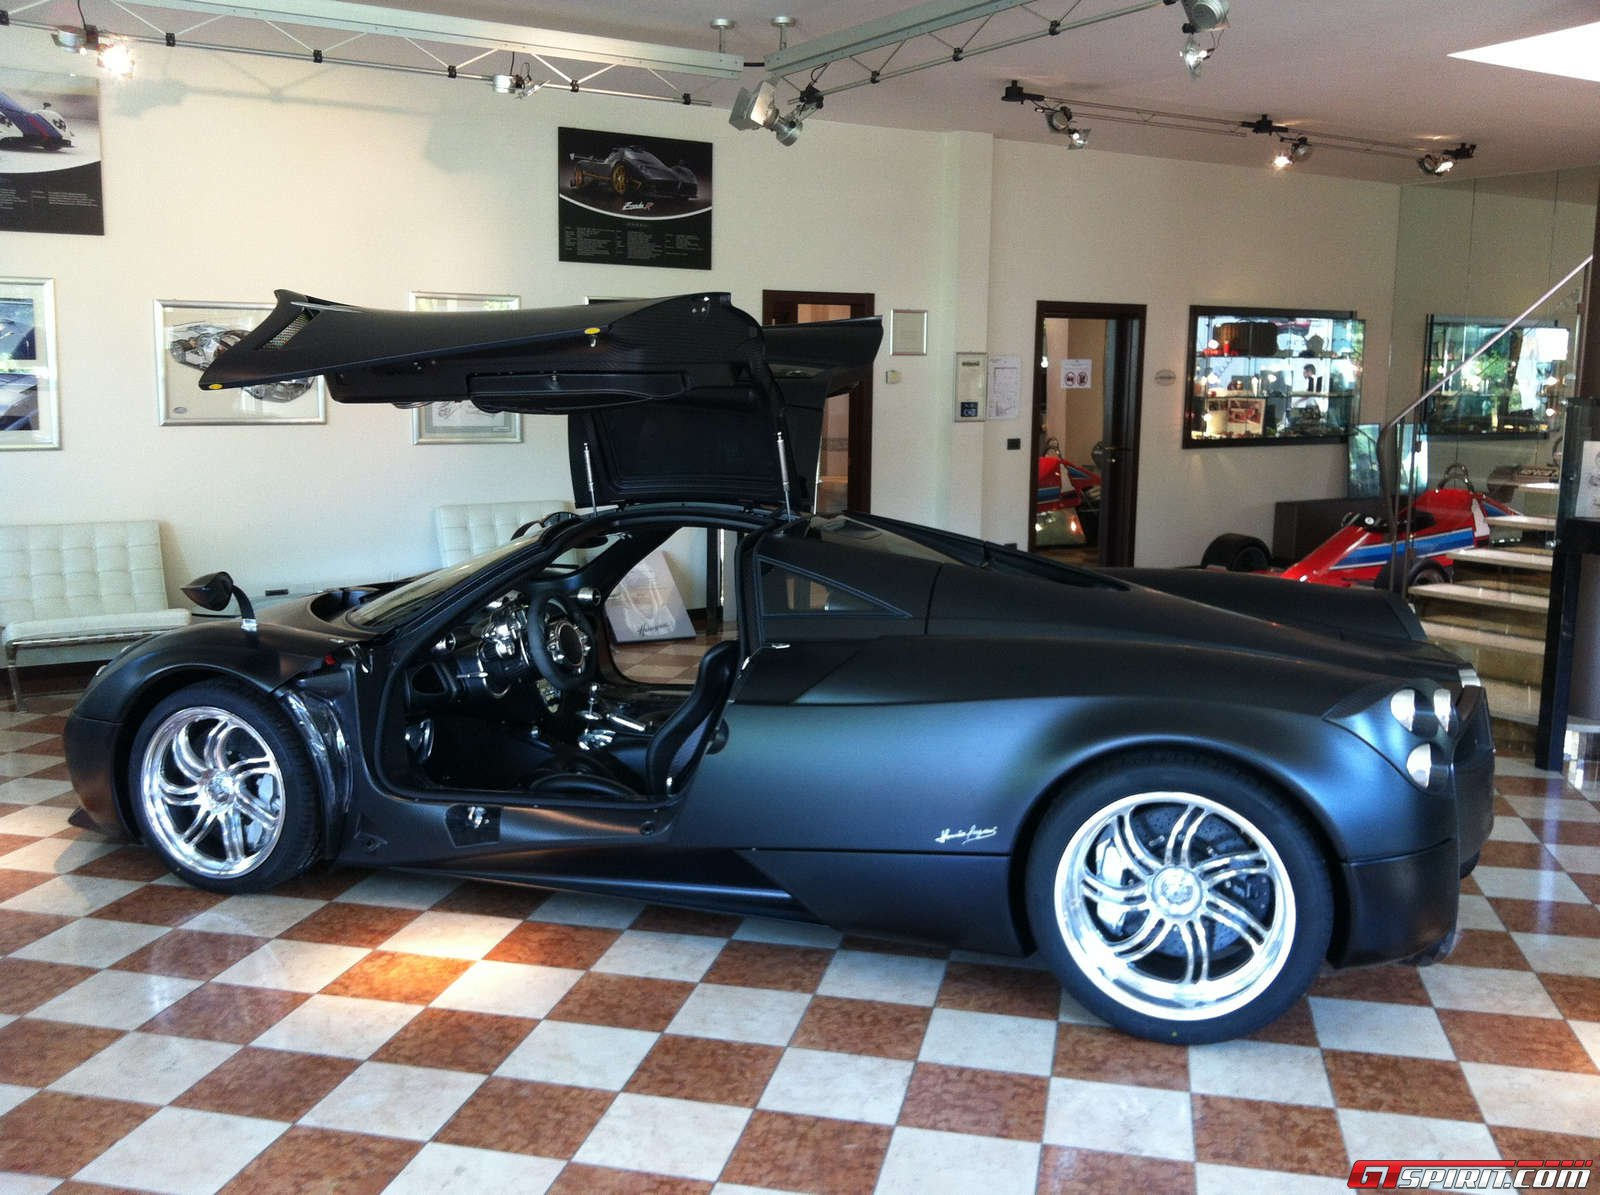 gtspirit-pagani-vanishing-point-2013-013.jpg